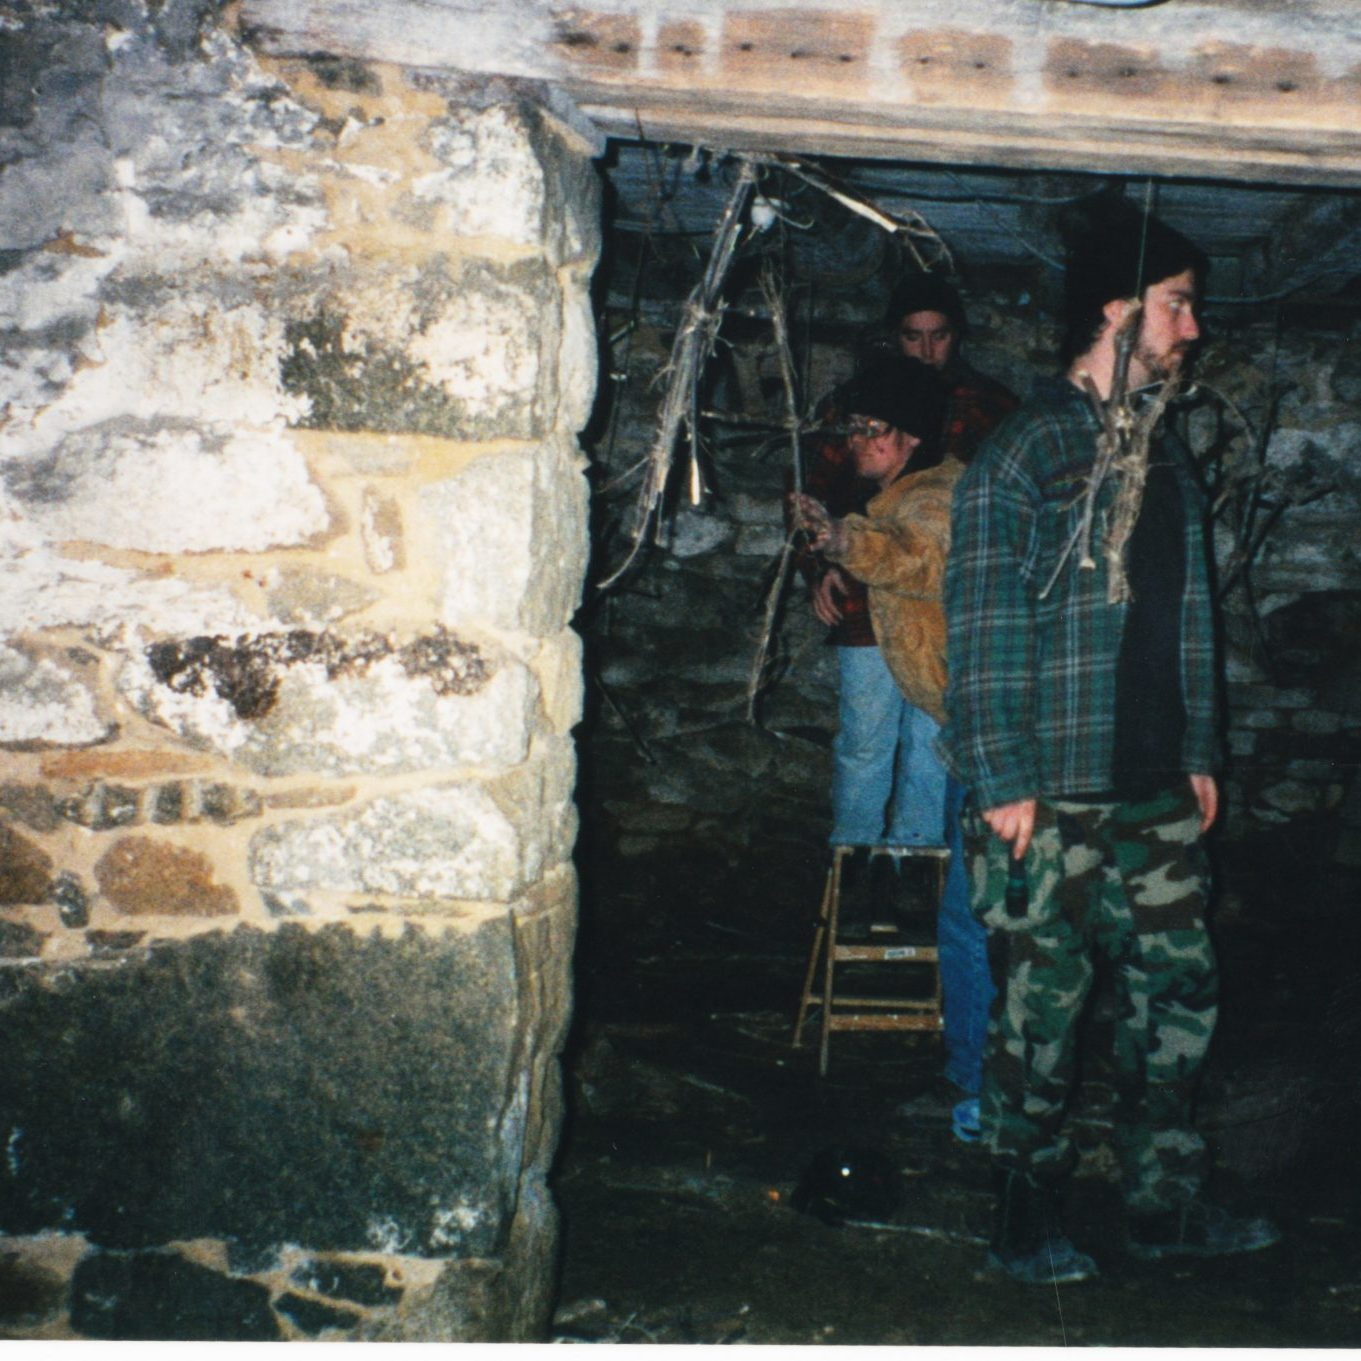 Pickup e1572014812195 The Blair Witch Project: 20 Behind-The-Scenes Nuggets That Made It The Most Successful Film Ever